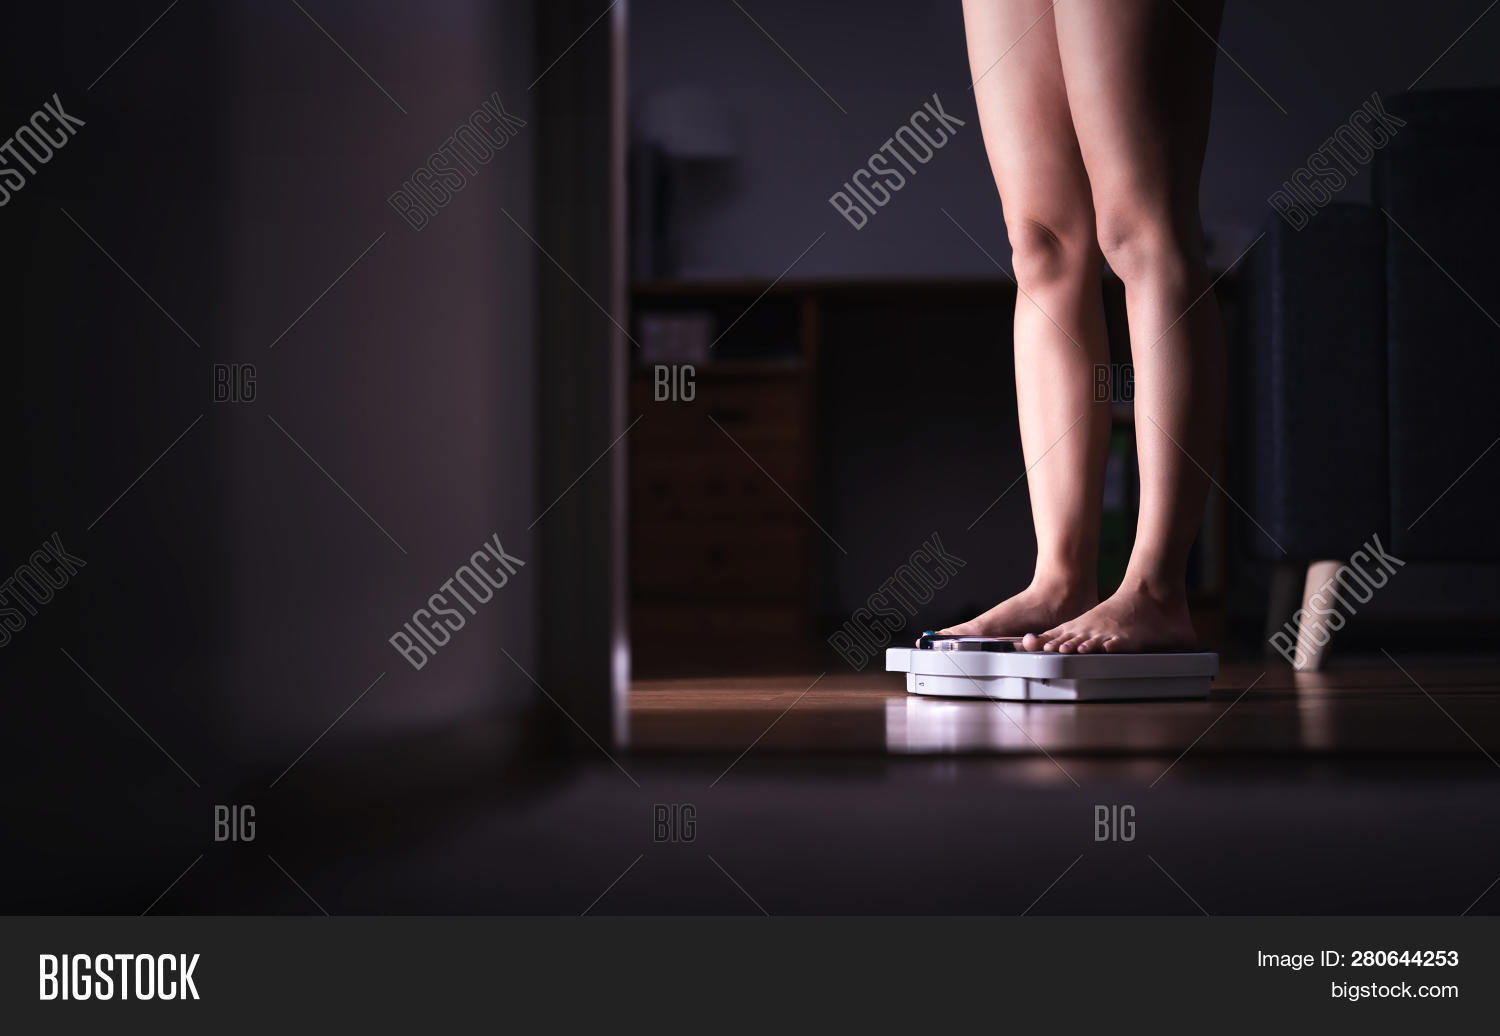 Lady Standing On Scale. Weight Loss And Diet Concept. Woman Weighing Herself. Fitness Lady Dieting.